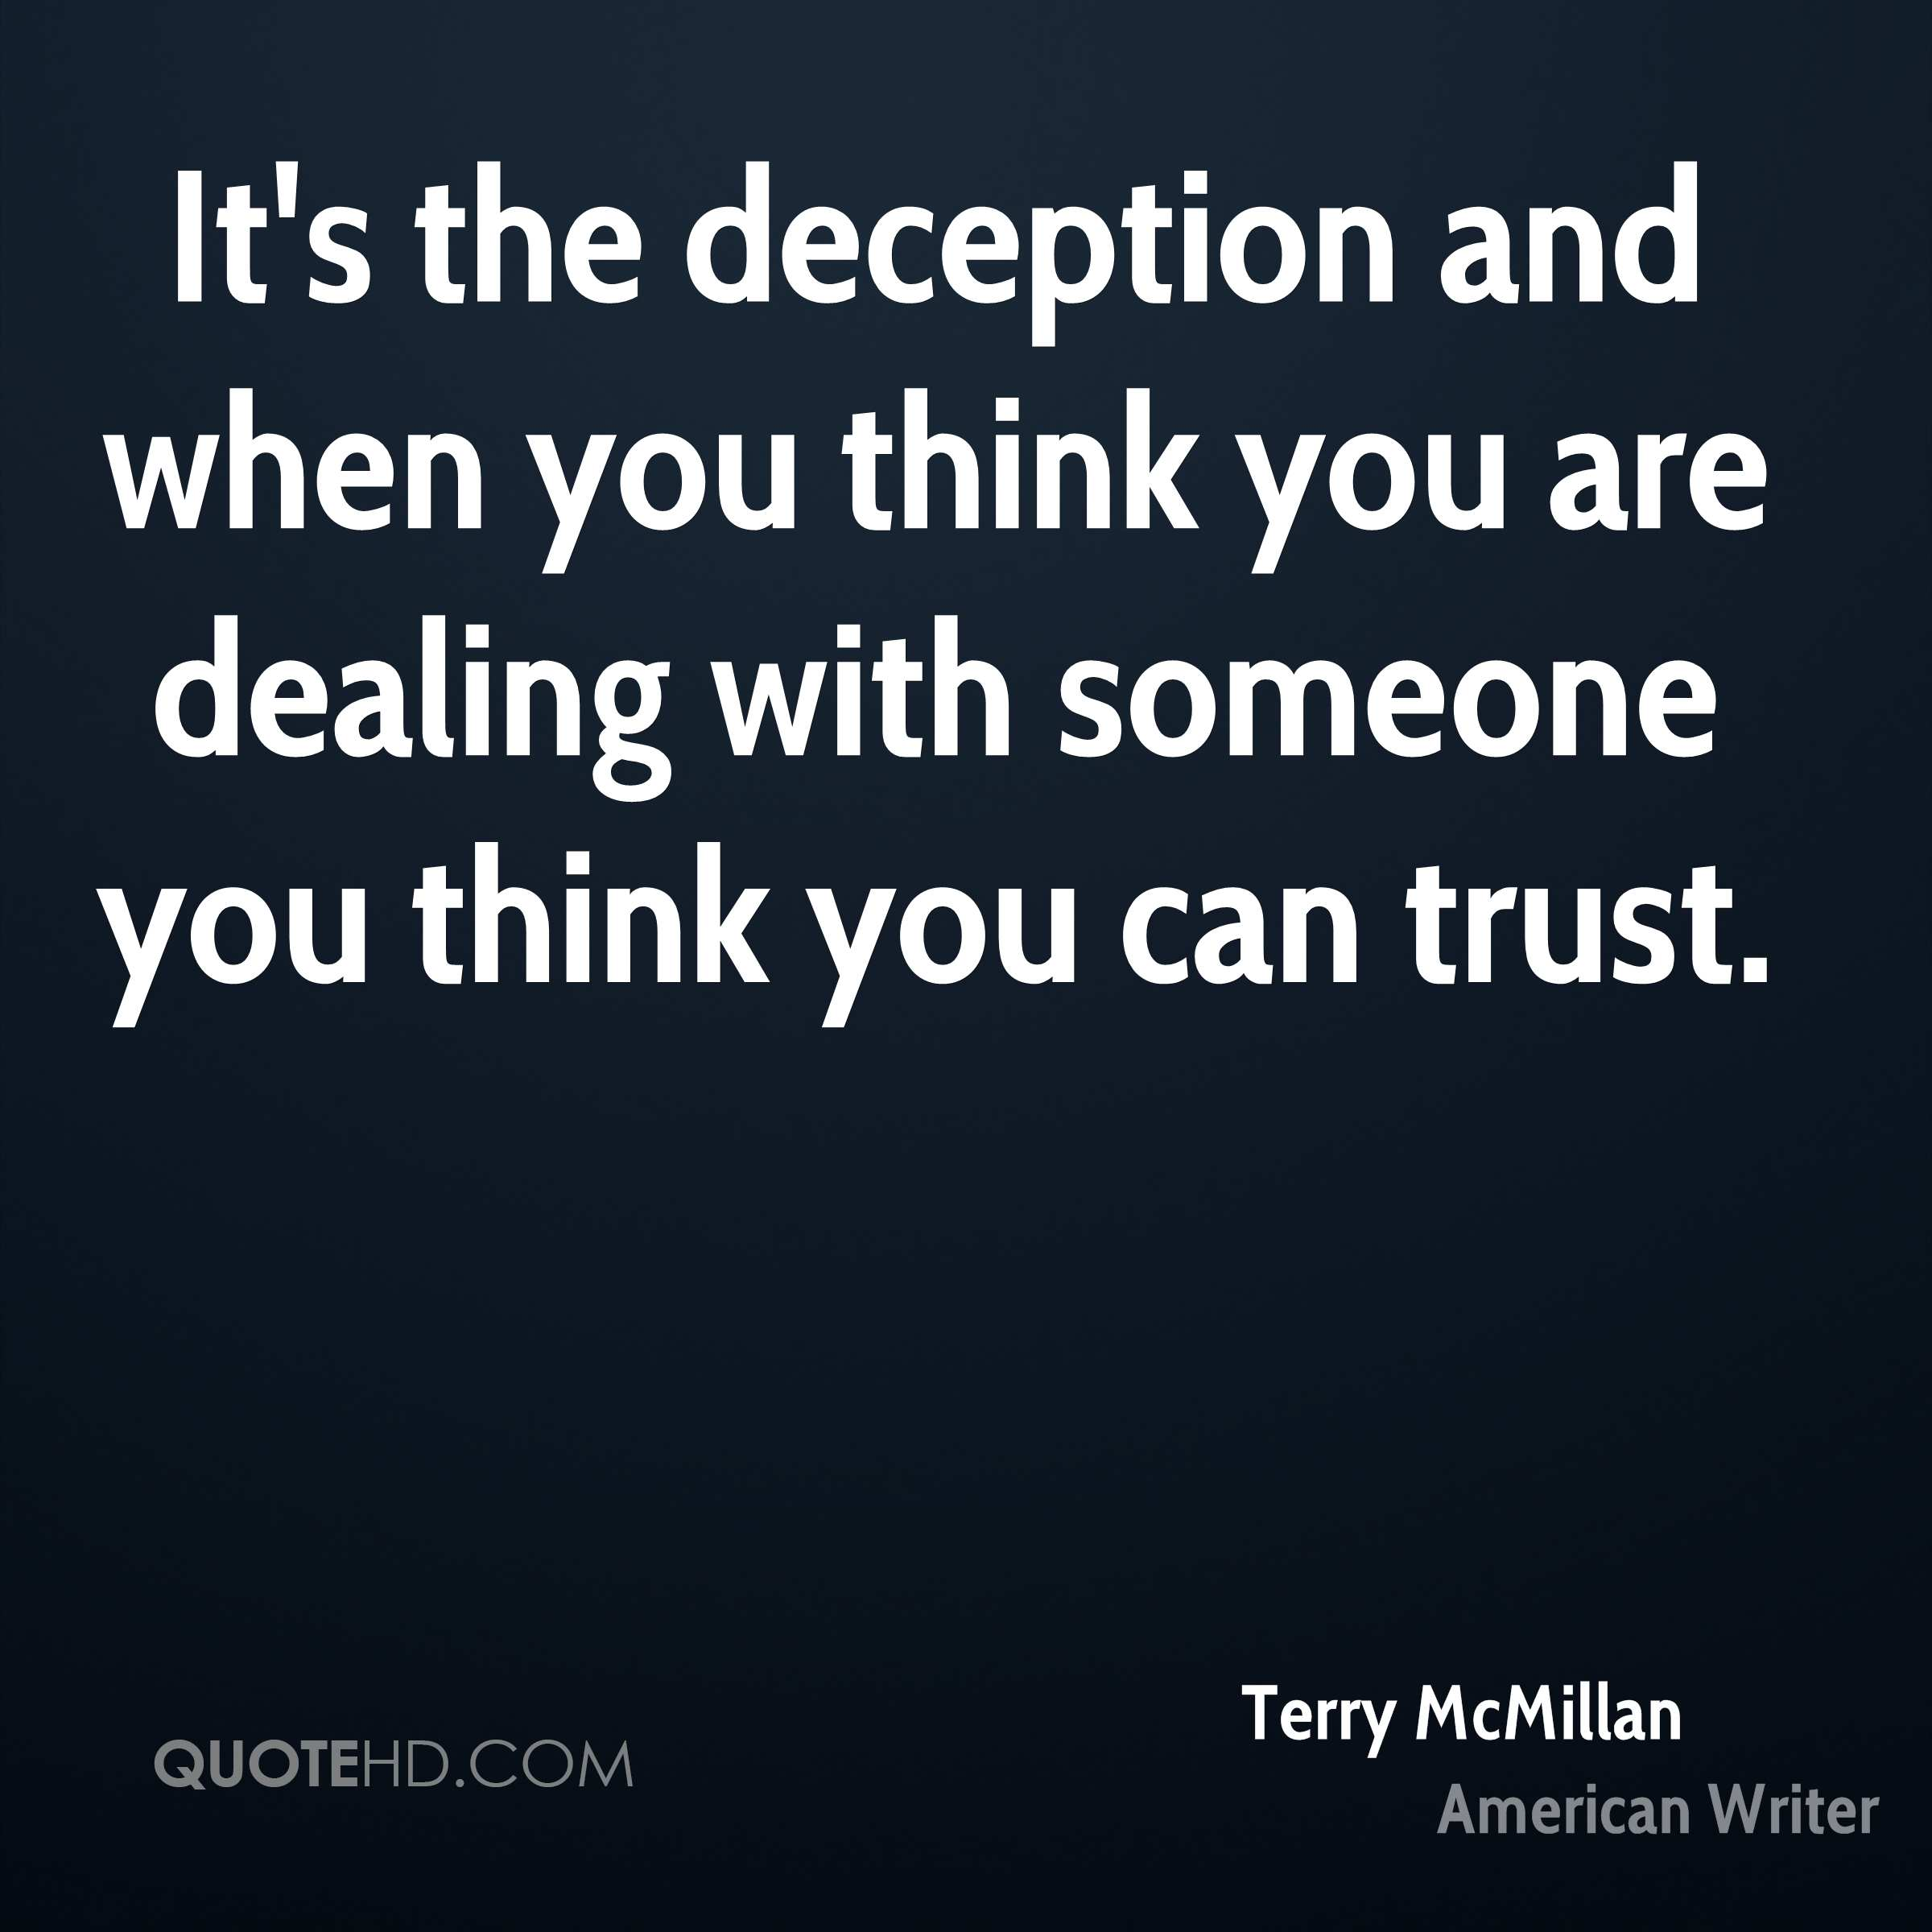 It's the deception and when you think you are dealing with someone you think you can trust.